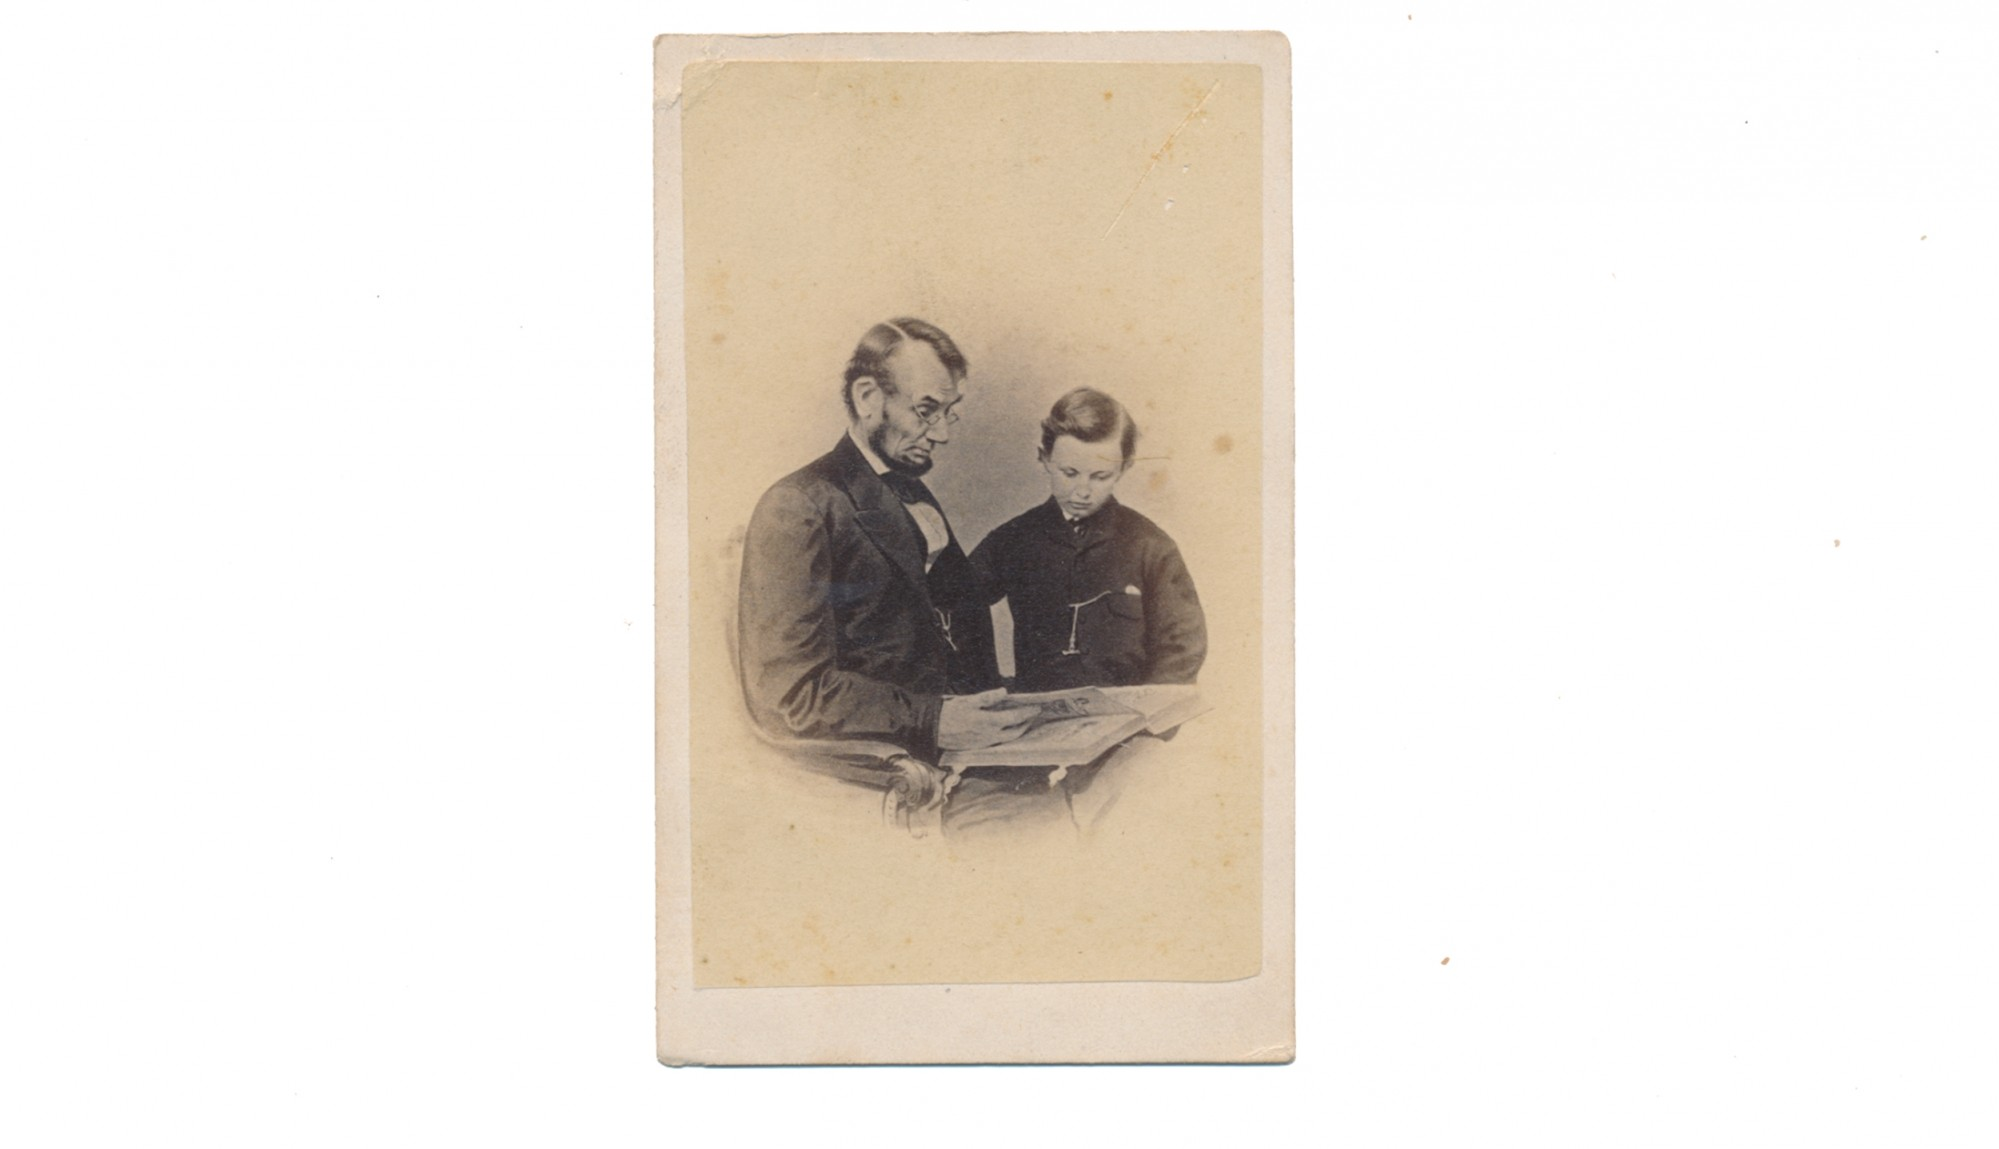 CDV IMAGE OF PRESIDENT LINCOLN AND HIS SON TAD